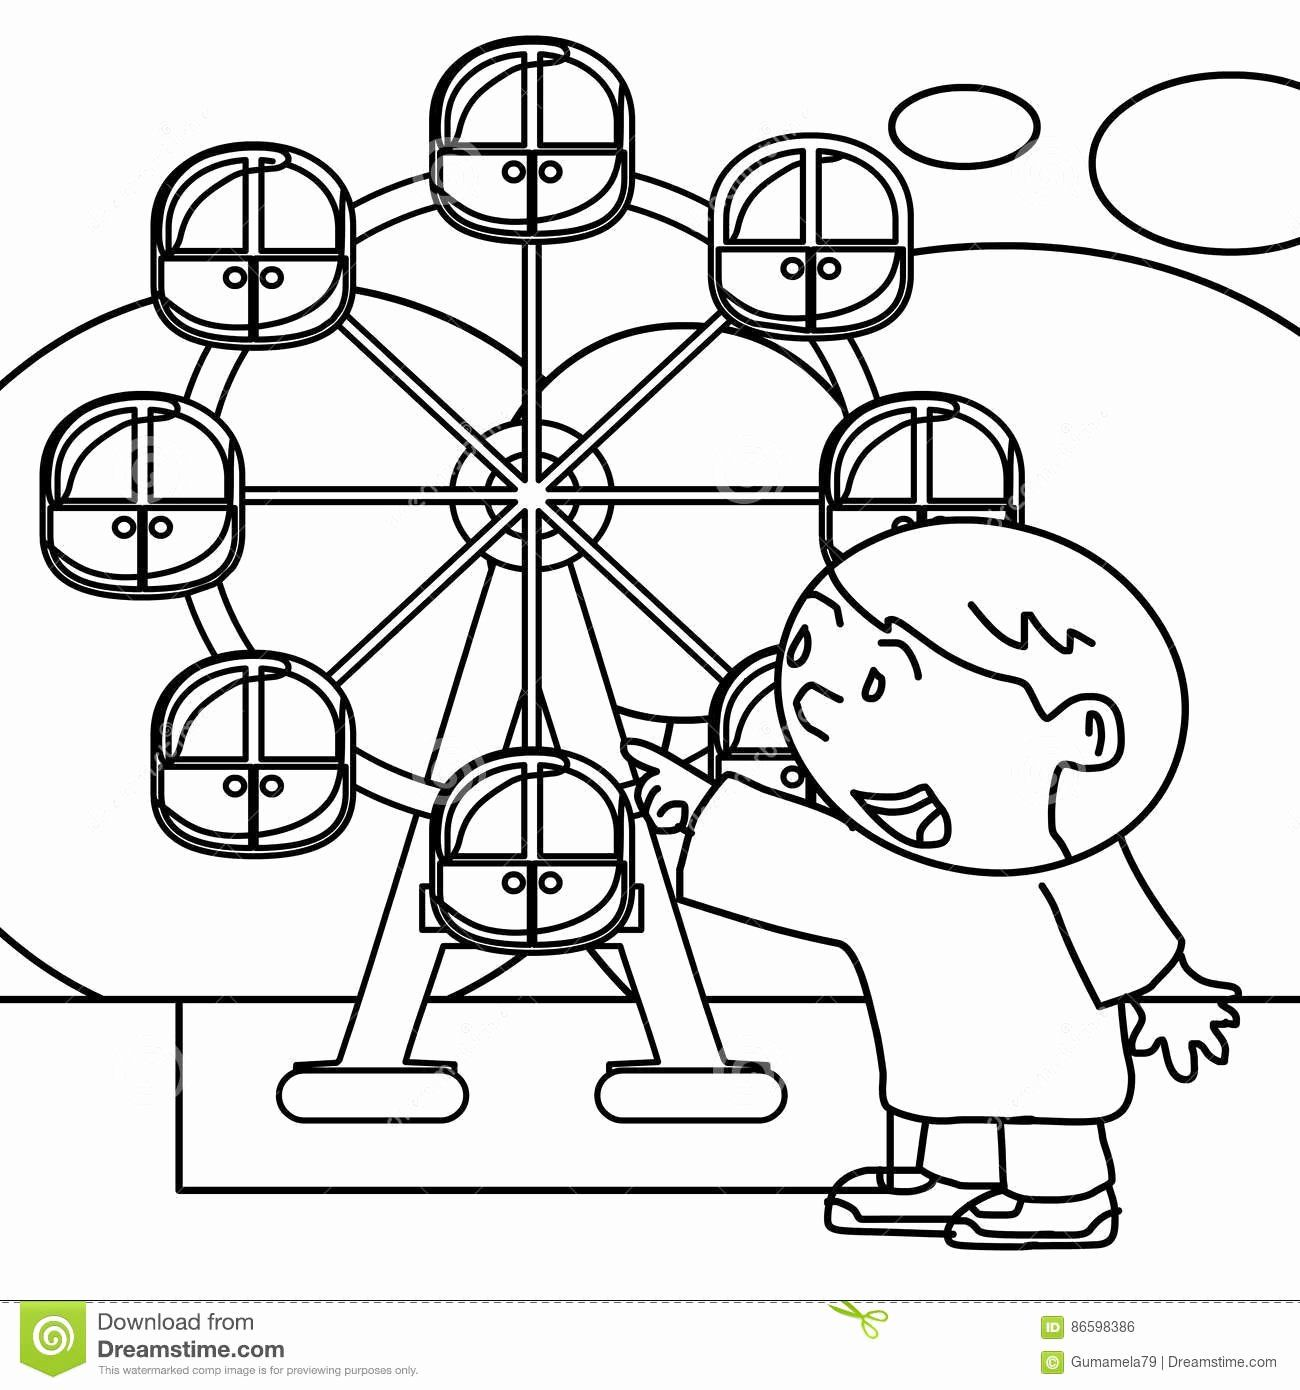 Ferris Wheel Coloring Pages Fresh Kid Coloring Page Stock Illustration Illustration Of Coloring Pages Color Printable Coloring Pages